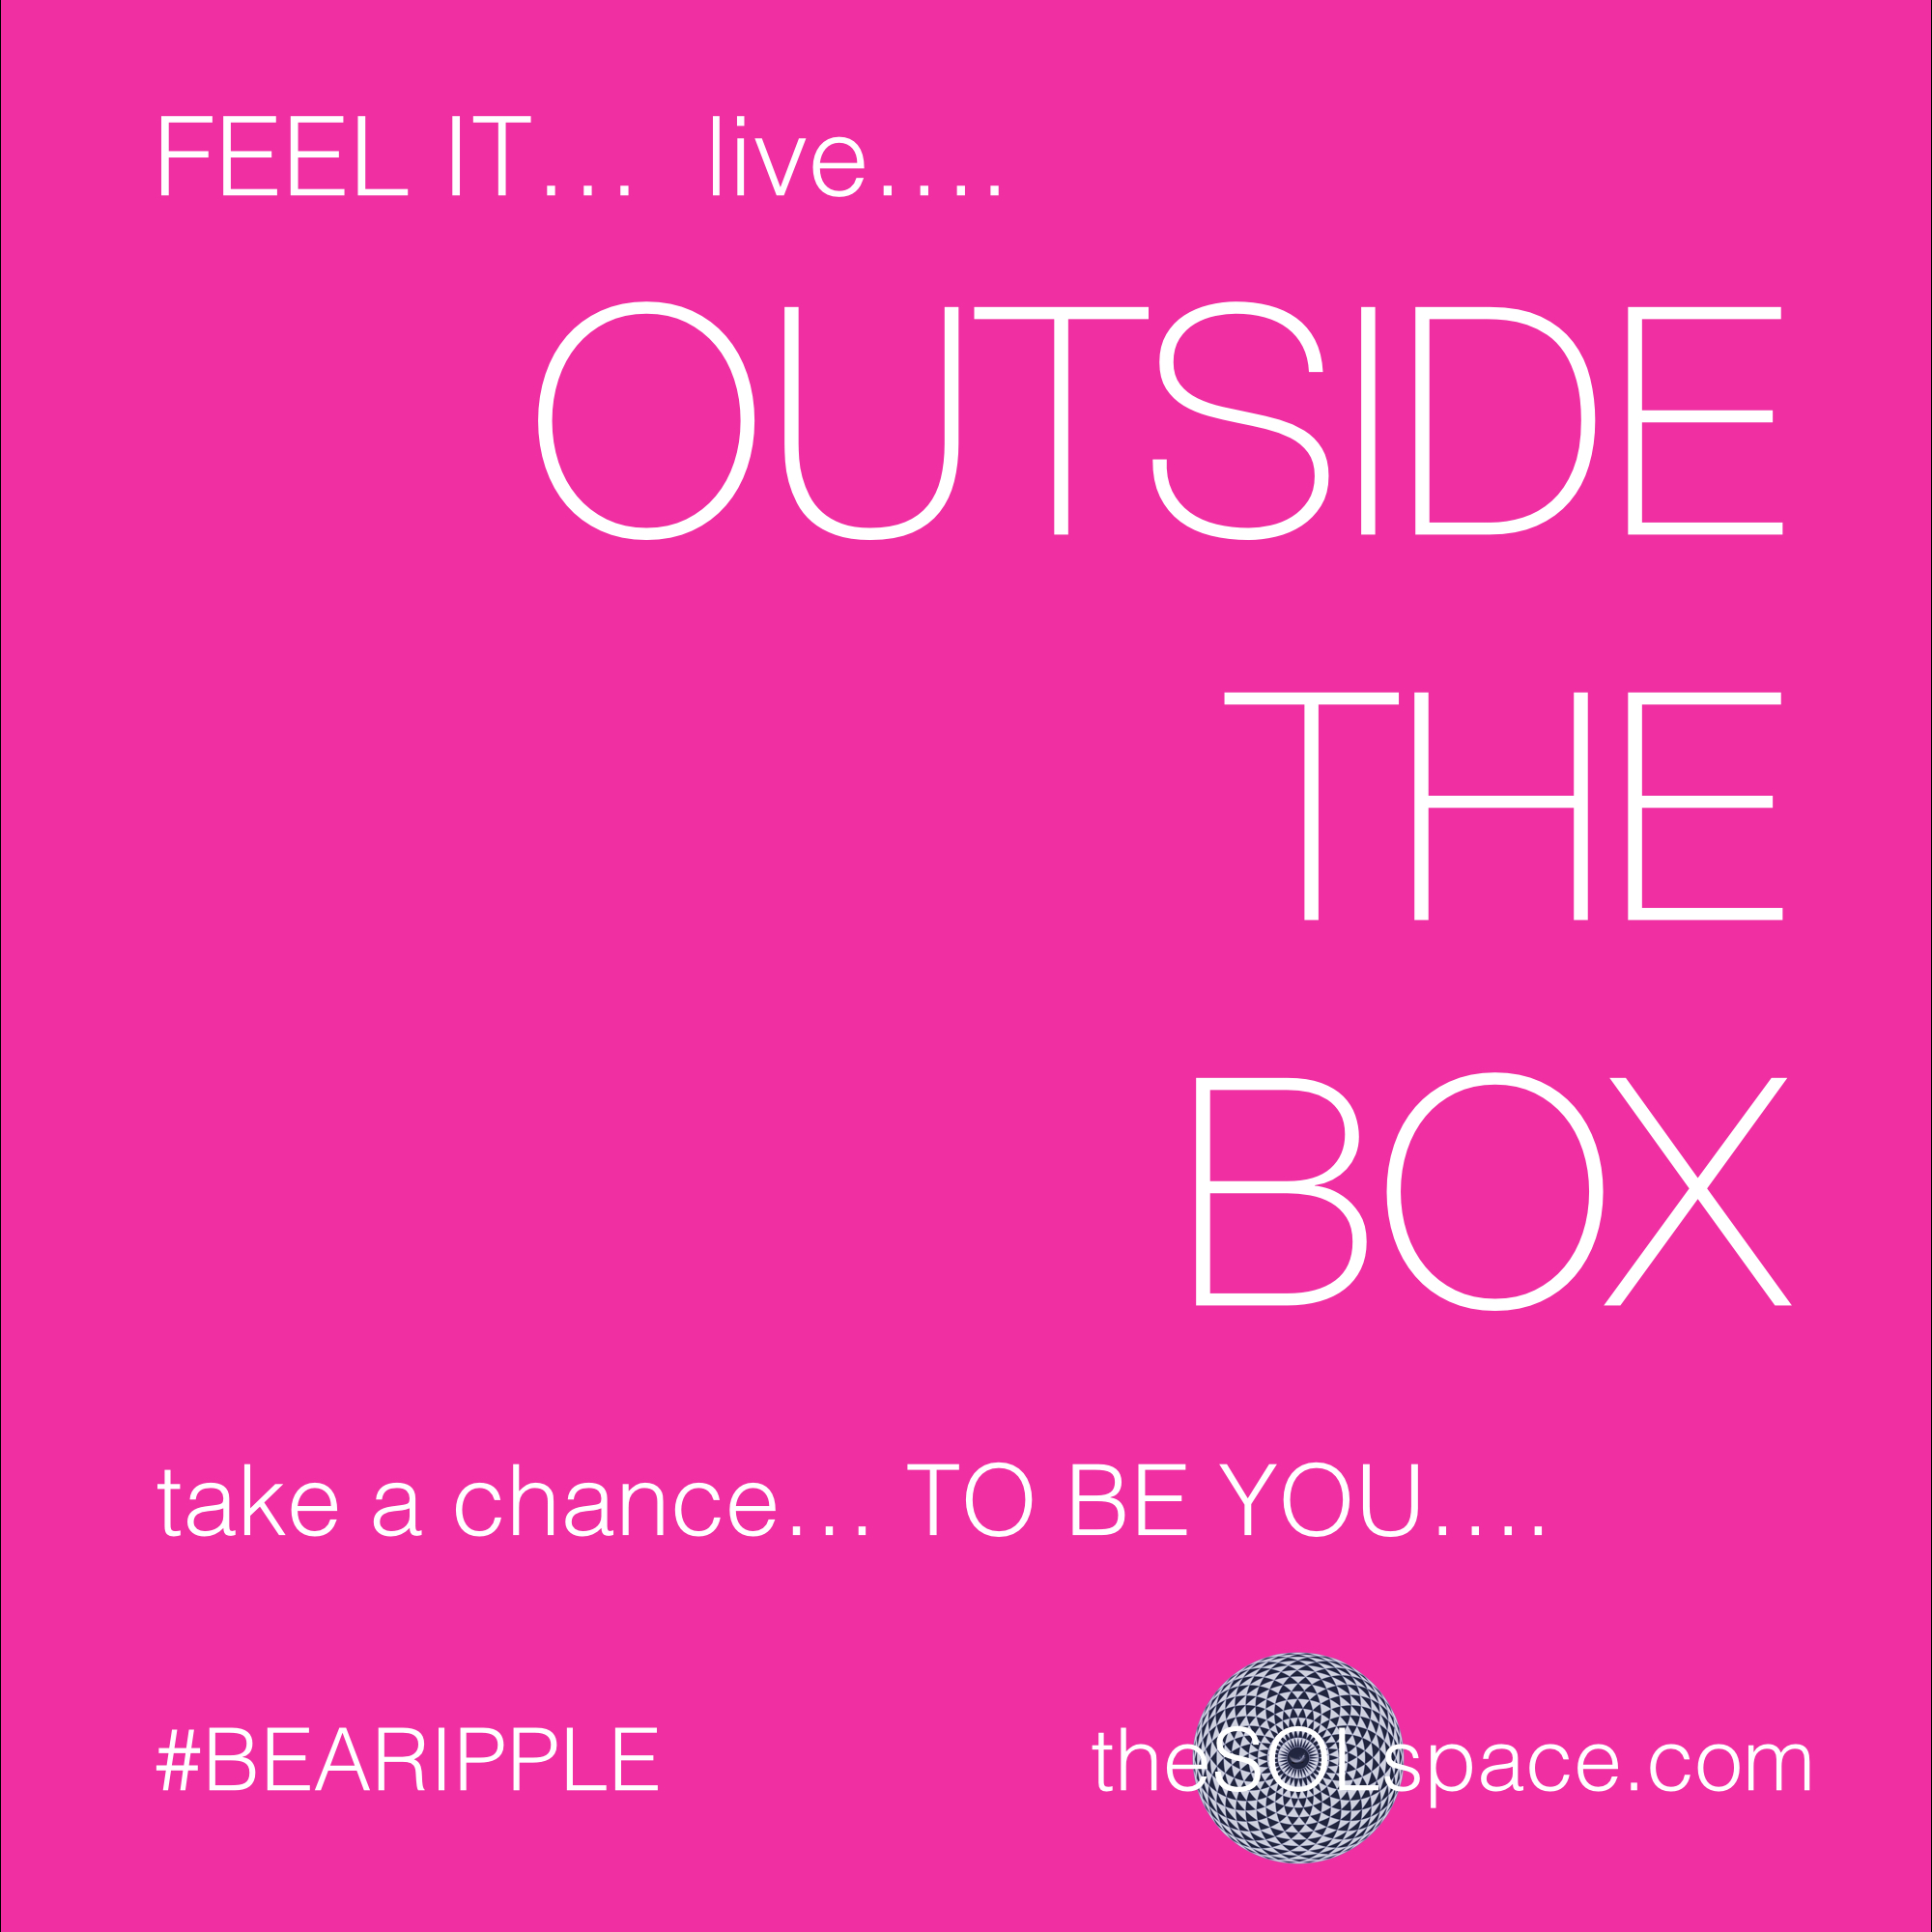 #BeARipple.. Feel it...Live outside the box, take a chance to be you @theSOLspace